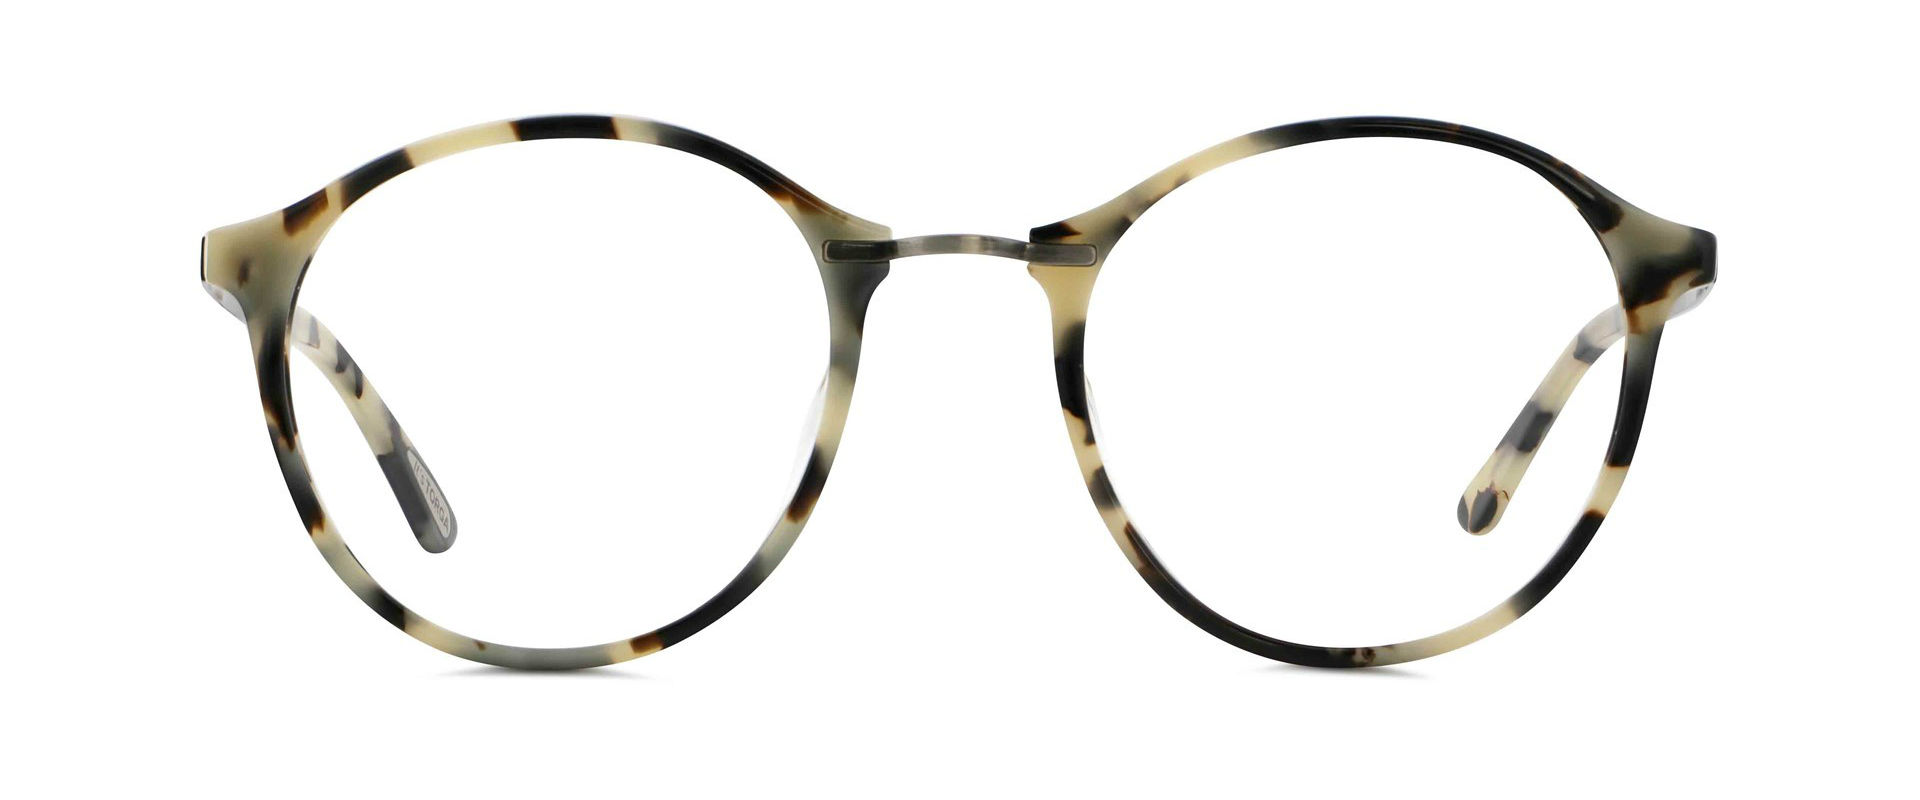 728a51b80ec1 Round frames are in, and the X-Look 5080s feature eye-catching  tortoise-shell acetate frames available in a number of colours. These are  ideal for your ...